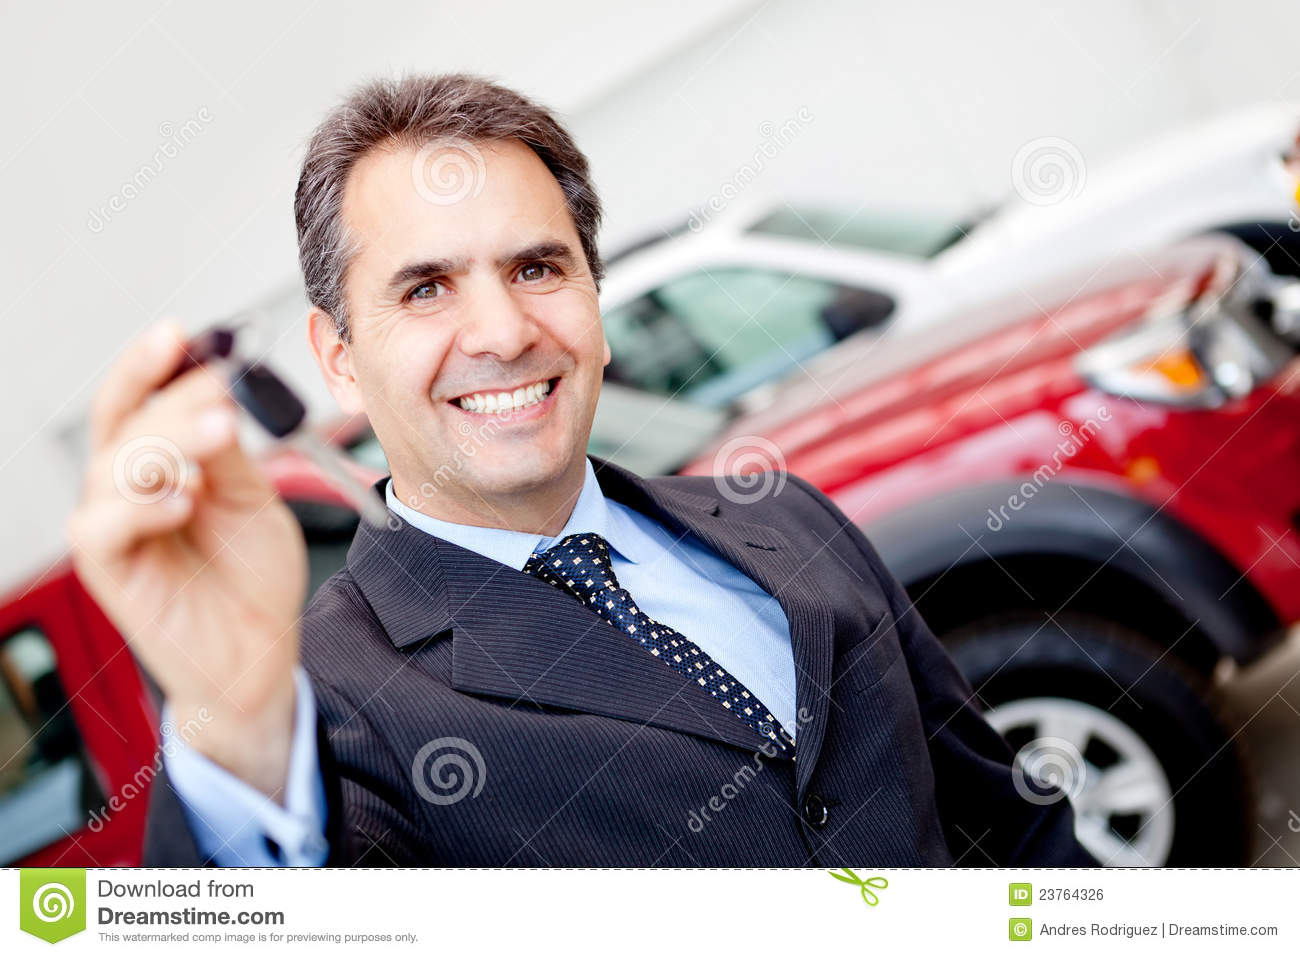 Expensive Car For Sale Or Gift Royalty Free Stock Image: Man Buying A Car Stock Photo. Image Of People, Retail